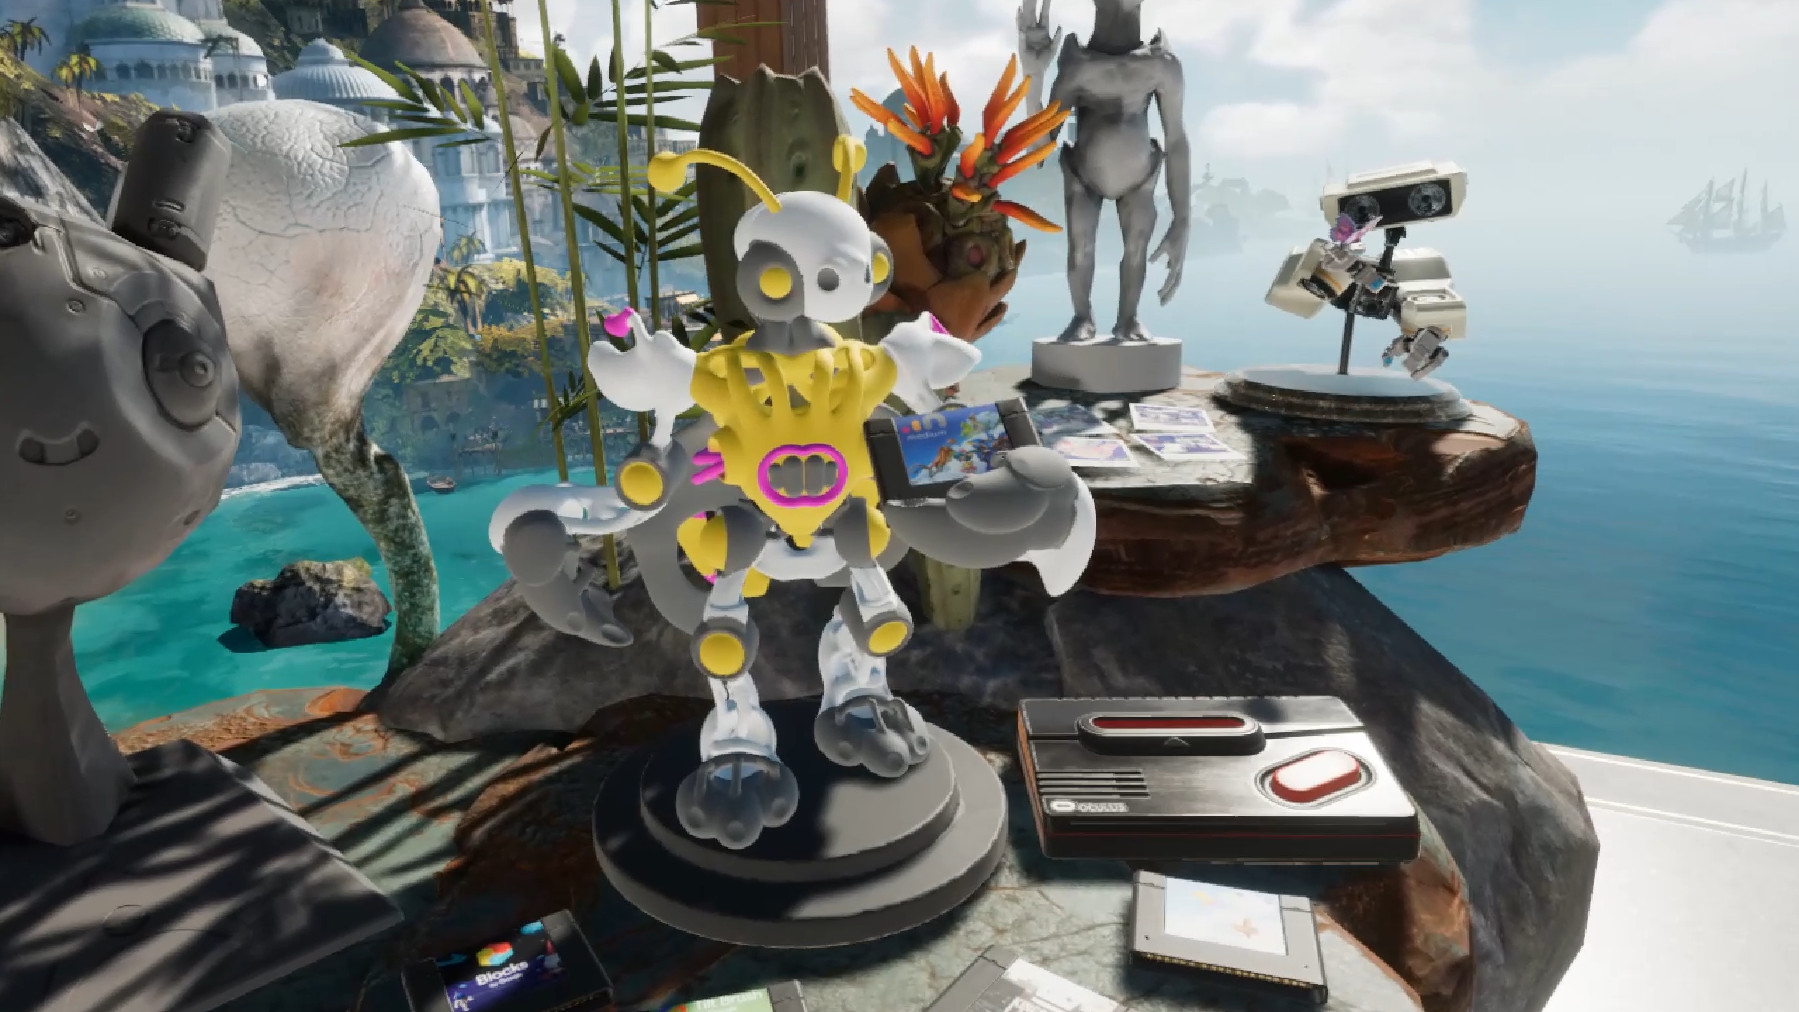 Scout windsor cute mech in oculus home 00 01 13 12 still001